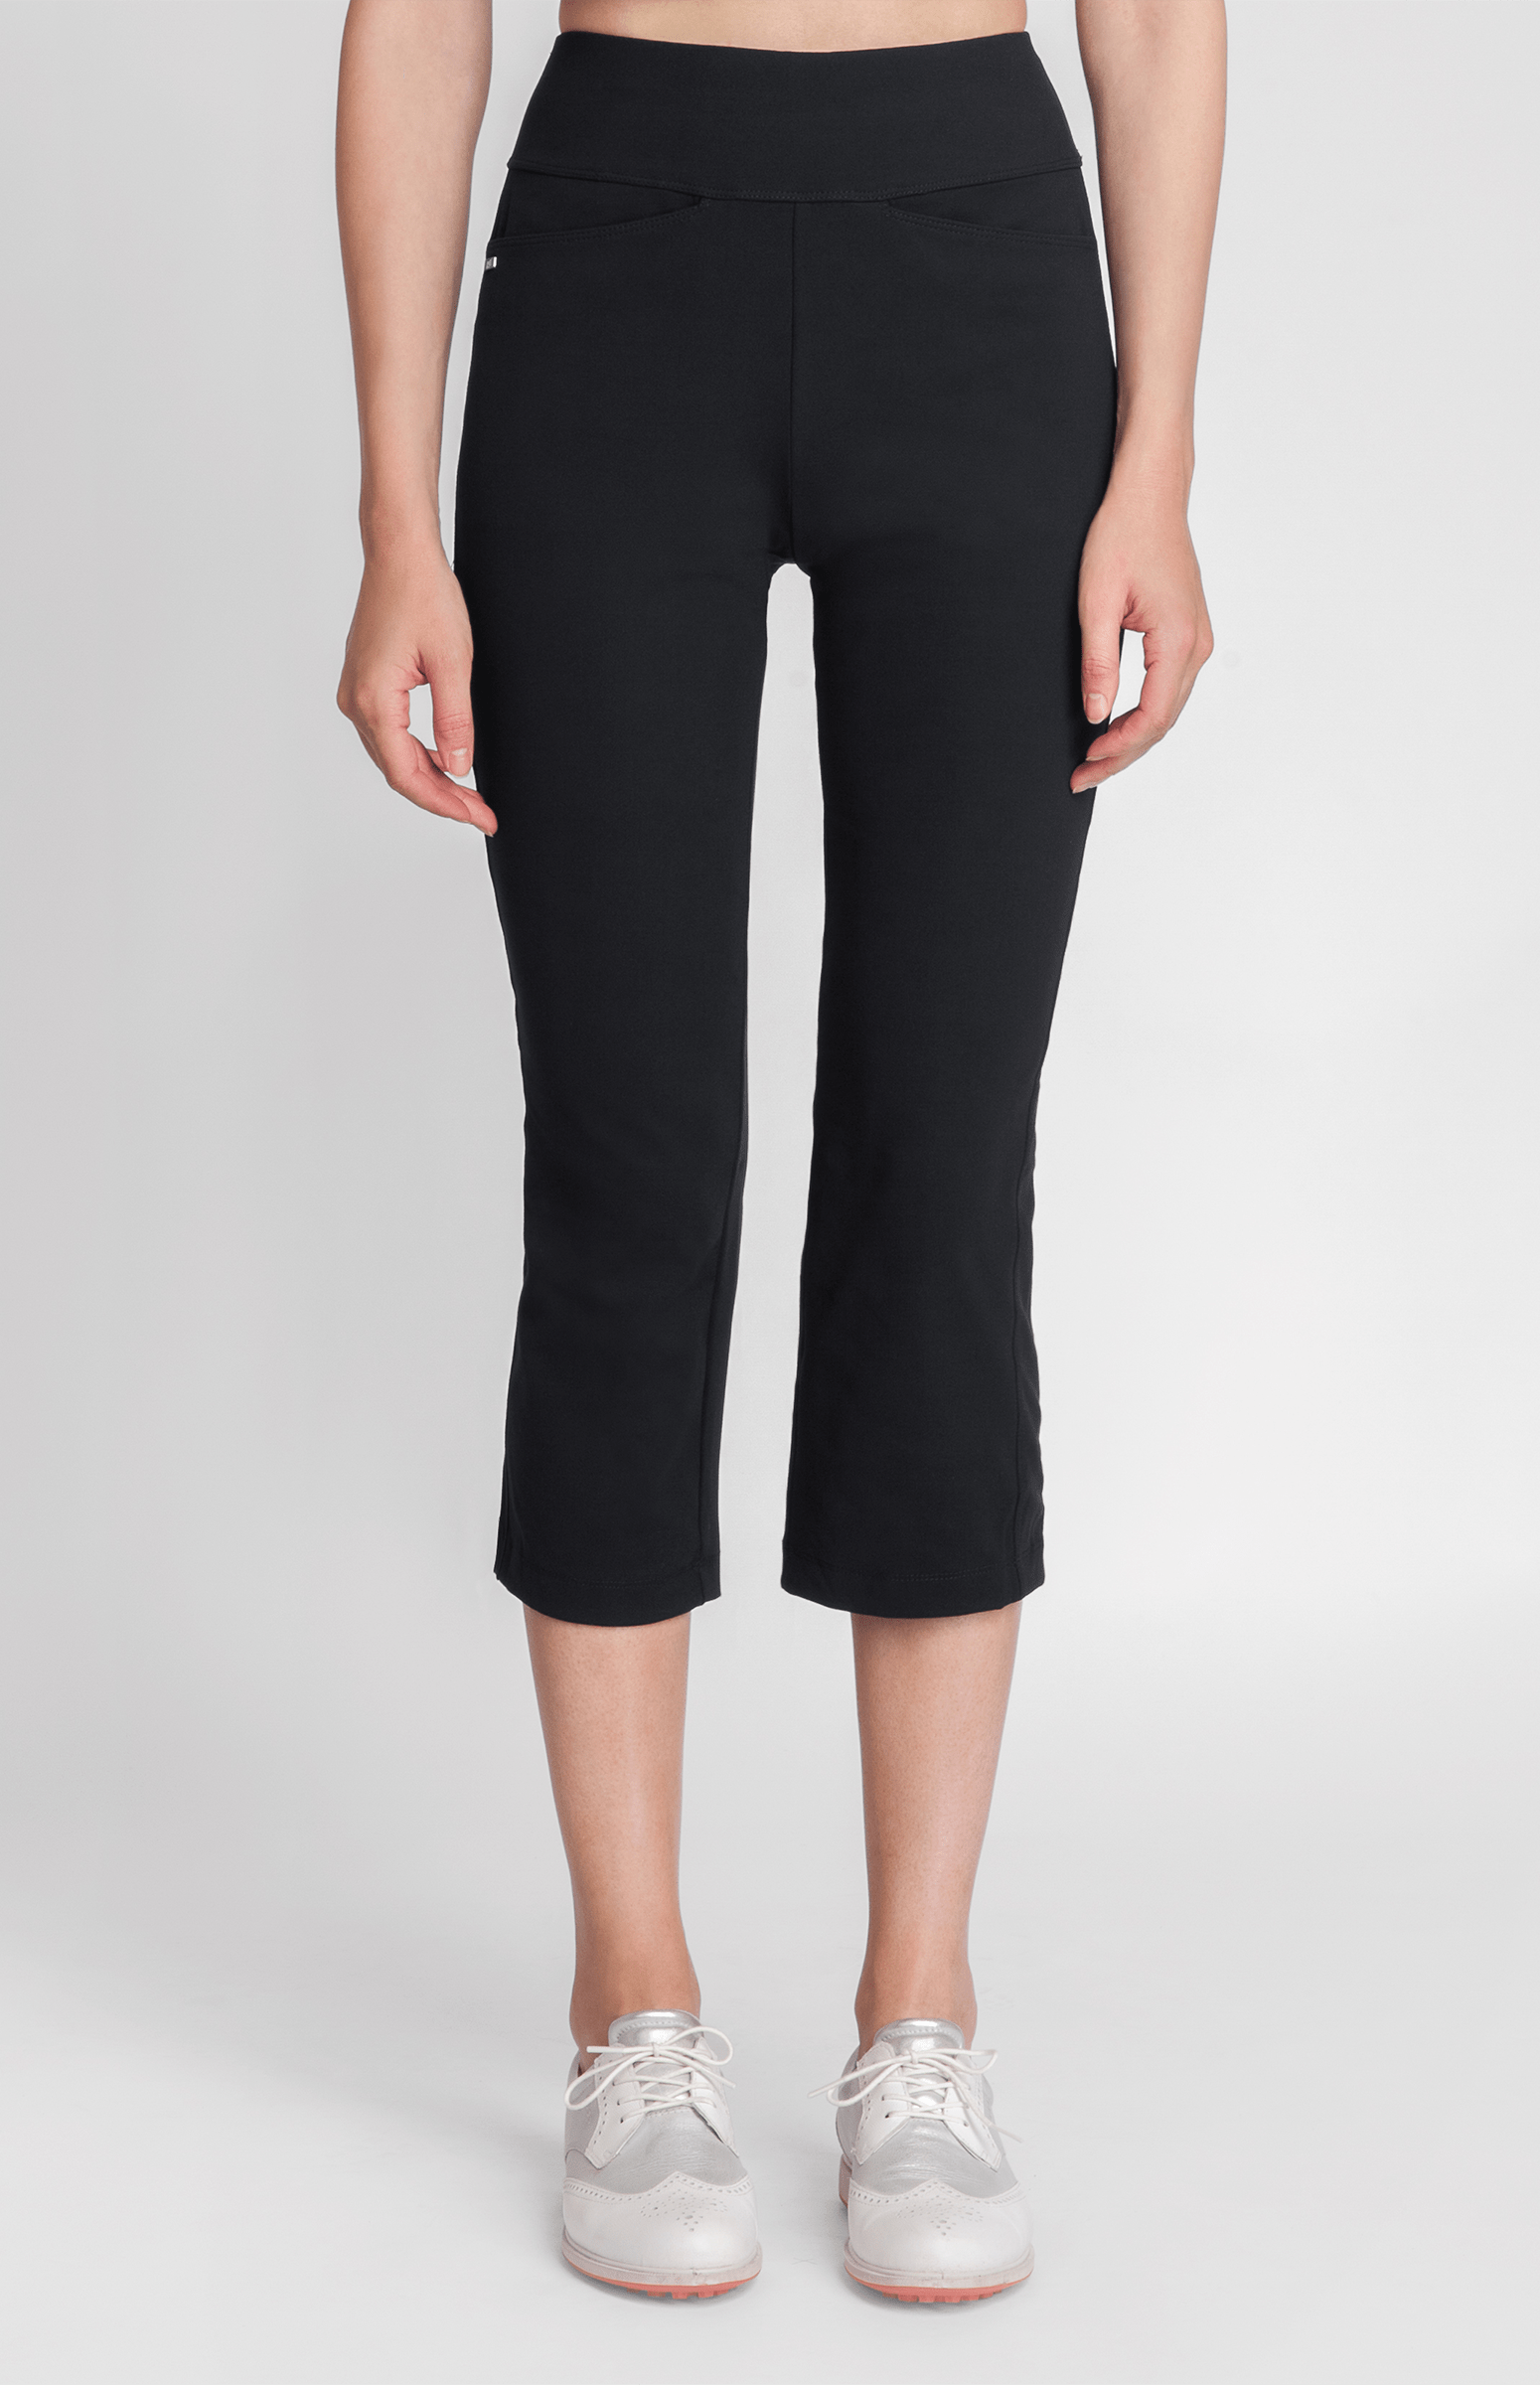 Horizon Black Comfort Knit Capri - FINAL SALE